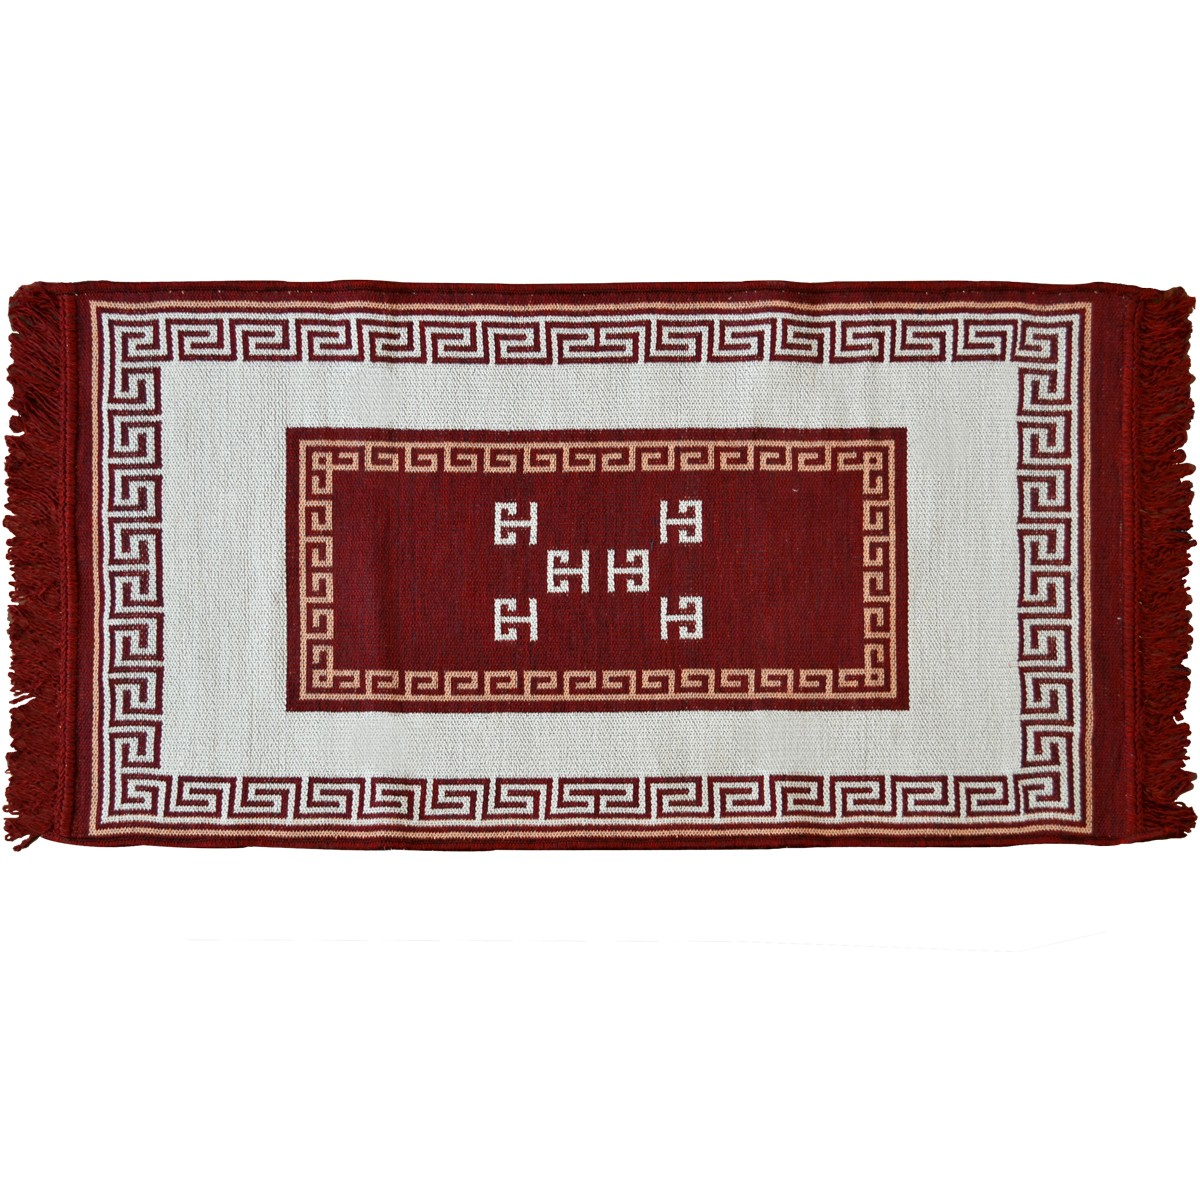 Meander Carpet, Two Sided, Cherry Red